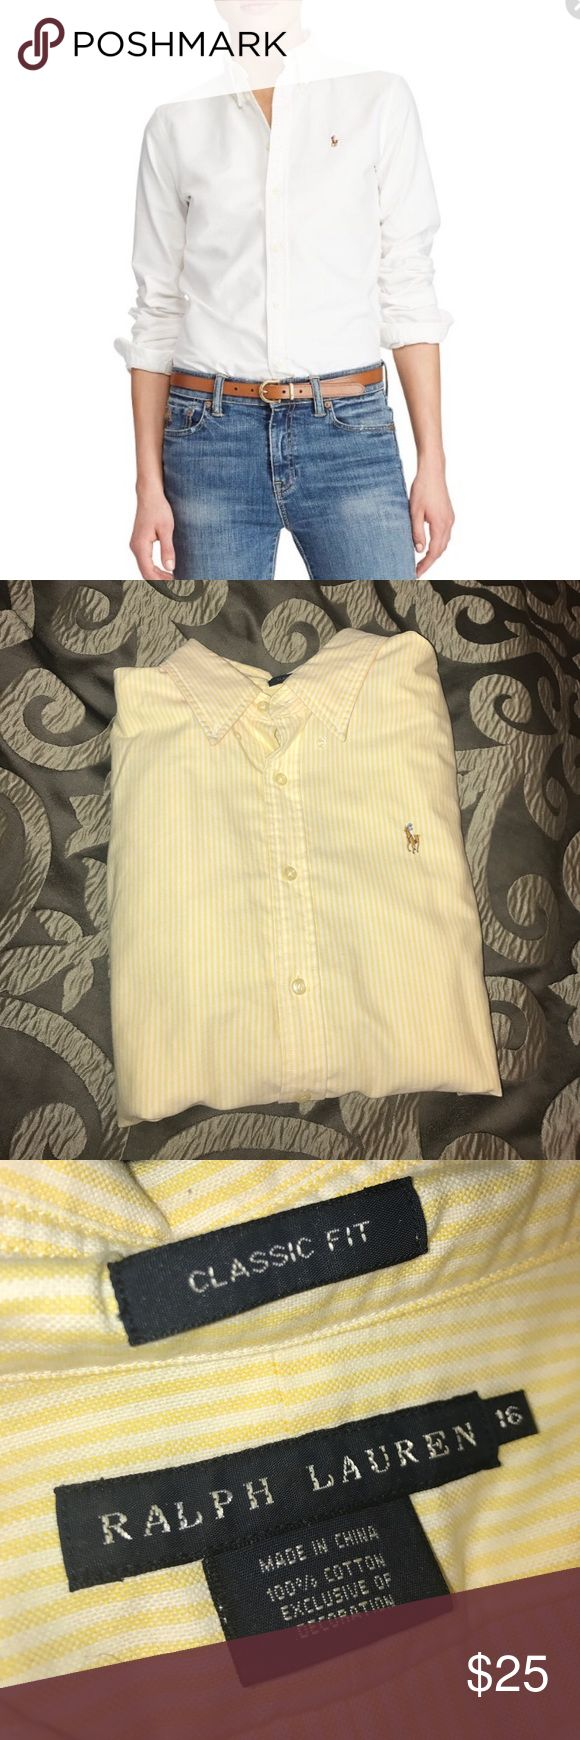 Yellow - Ralph Lauren Women's Classic Fit Oxford Ralph Lauren Women's Classic Fit Oxford in light yellow vertical stripes. Size 16. 100% cotton and machine washable. Worn once - EUC! Ralph Lauren Tops Button Down Shirts